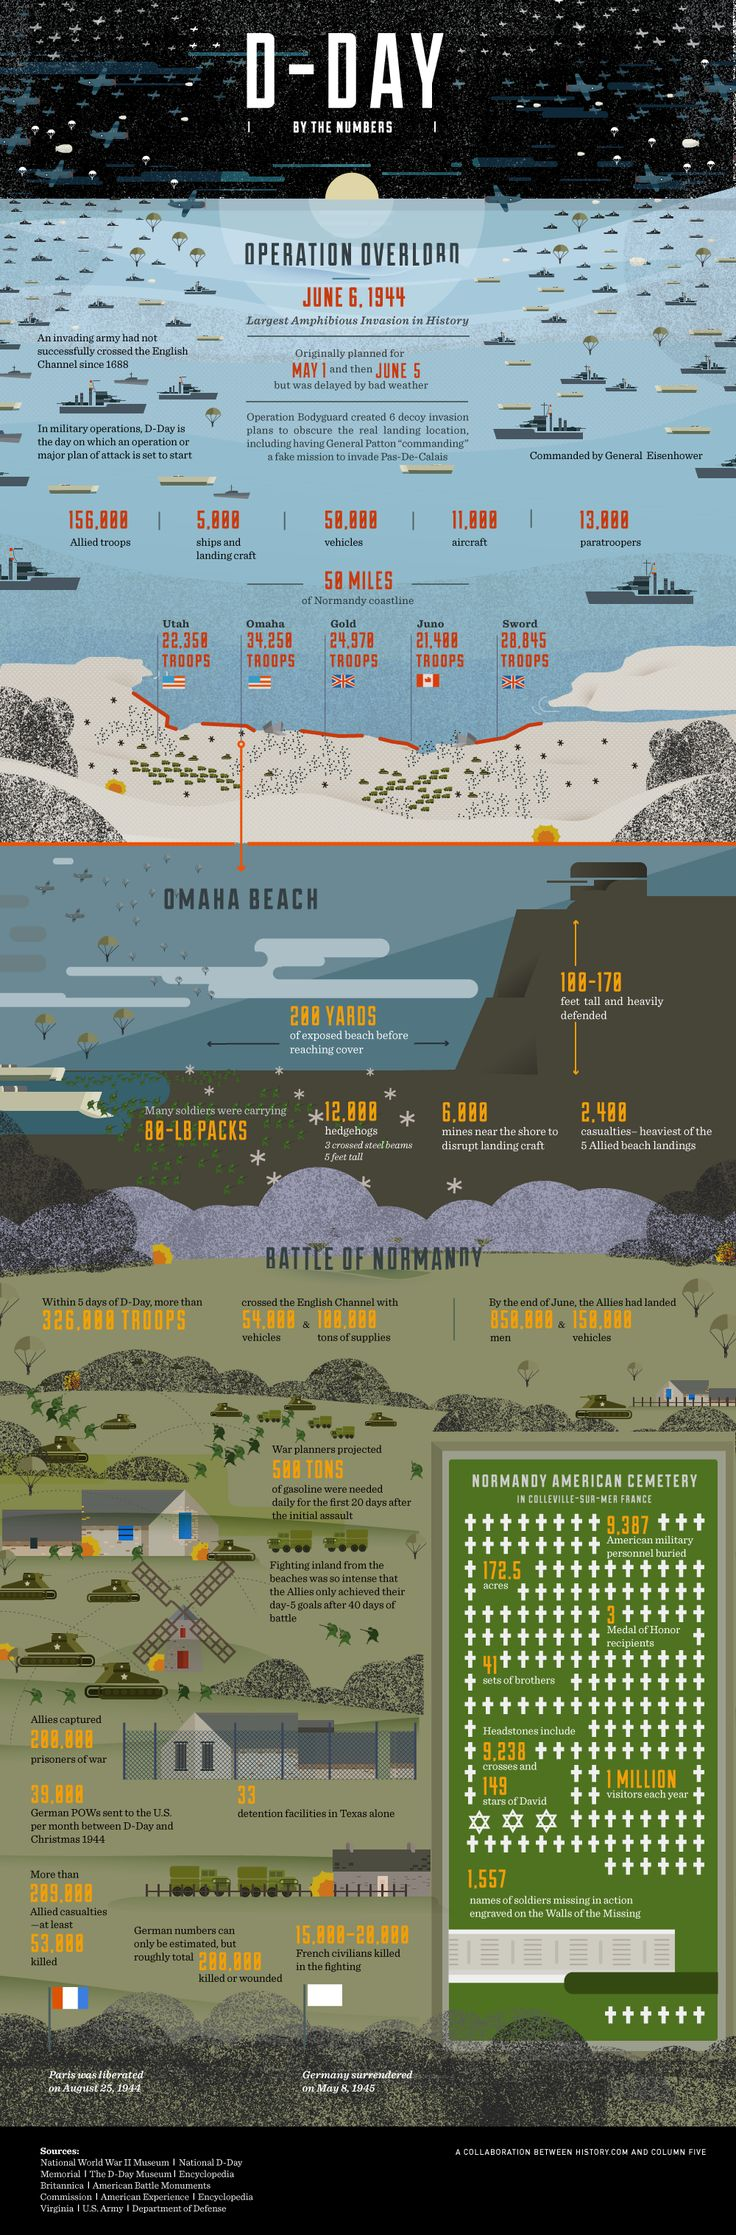 Day reenactment ww ii pictures pinterest - D Day Infographic